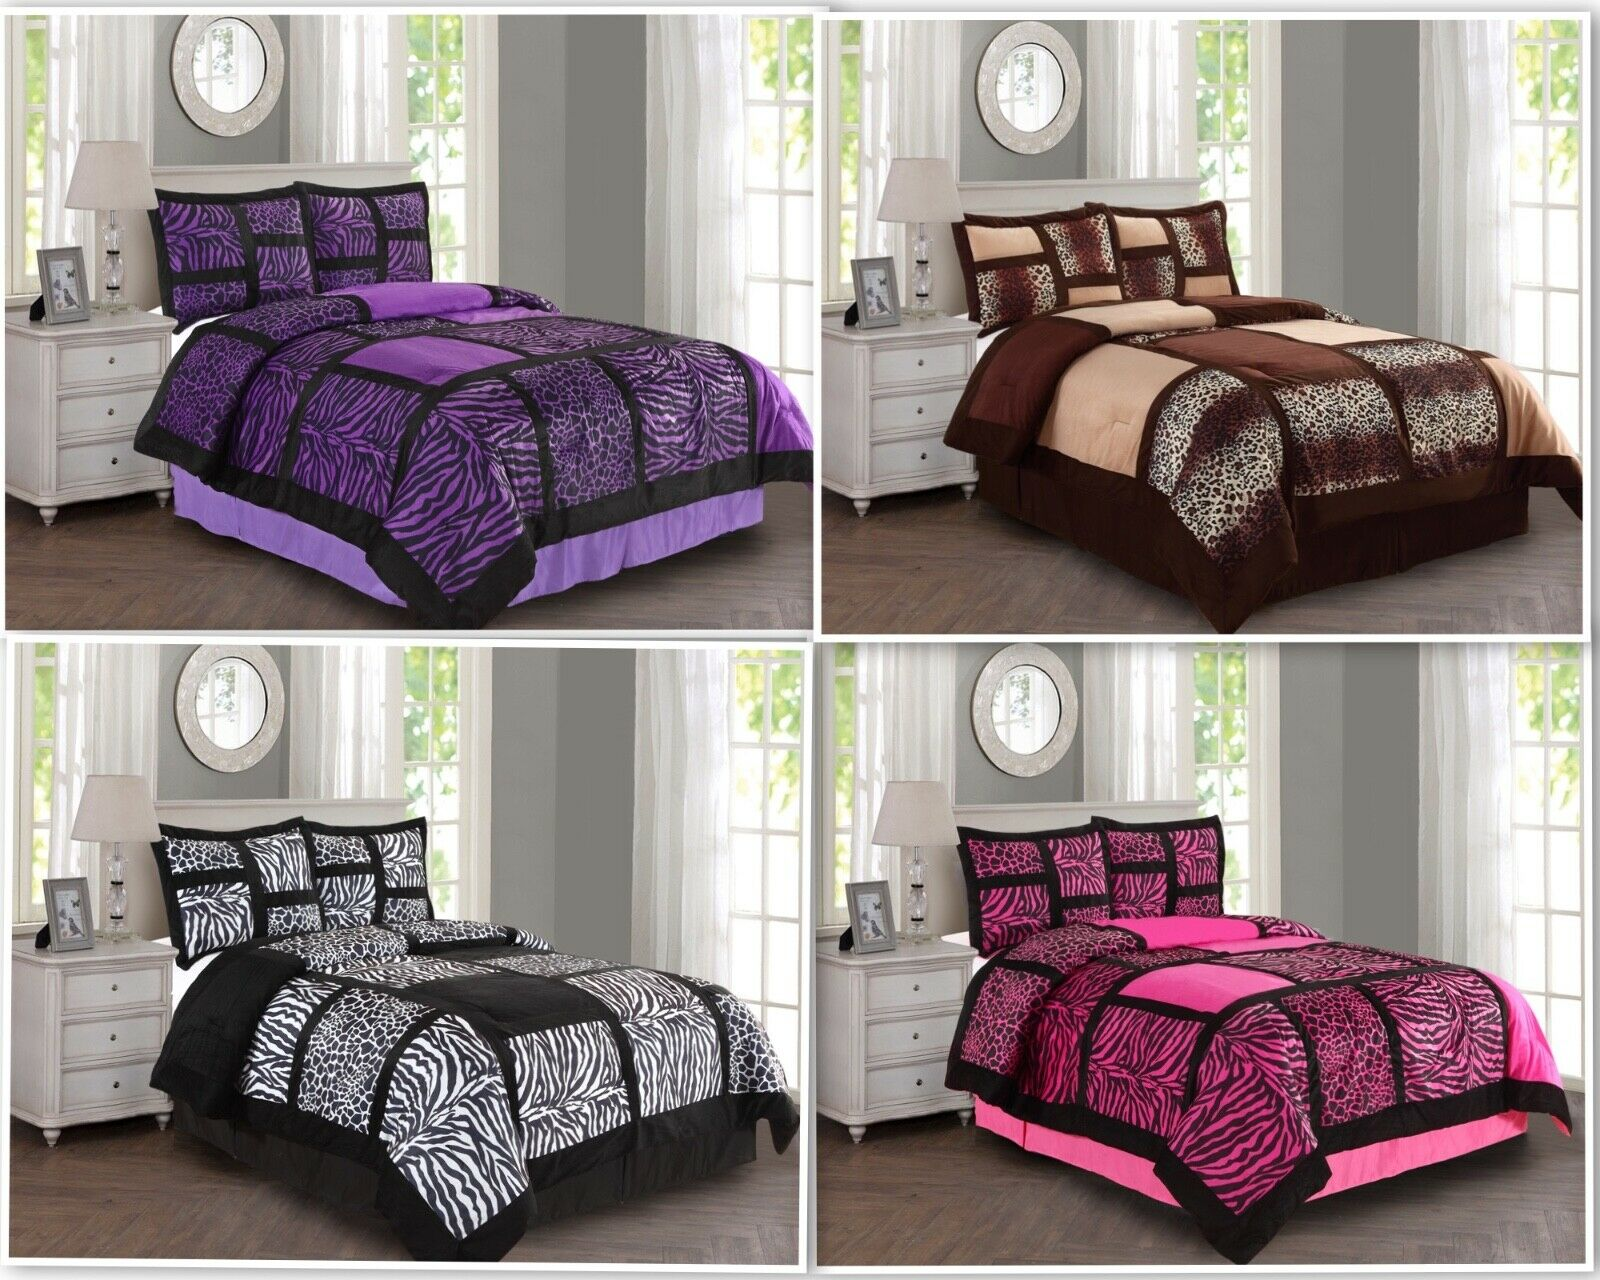 empire home safari damask 4 piece comforter